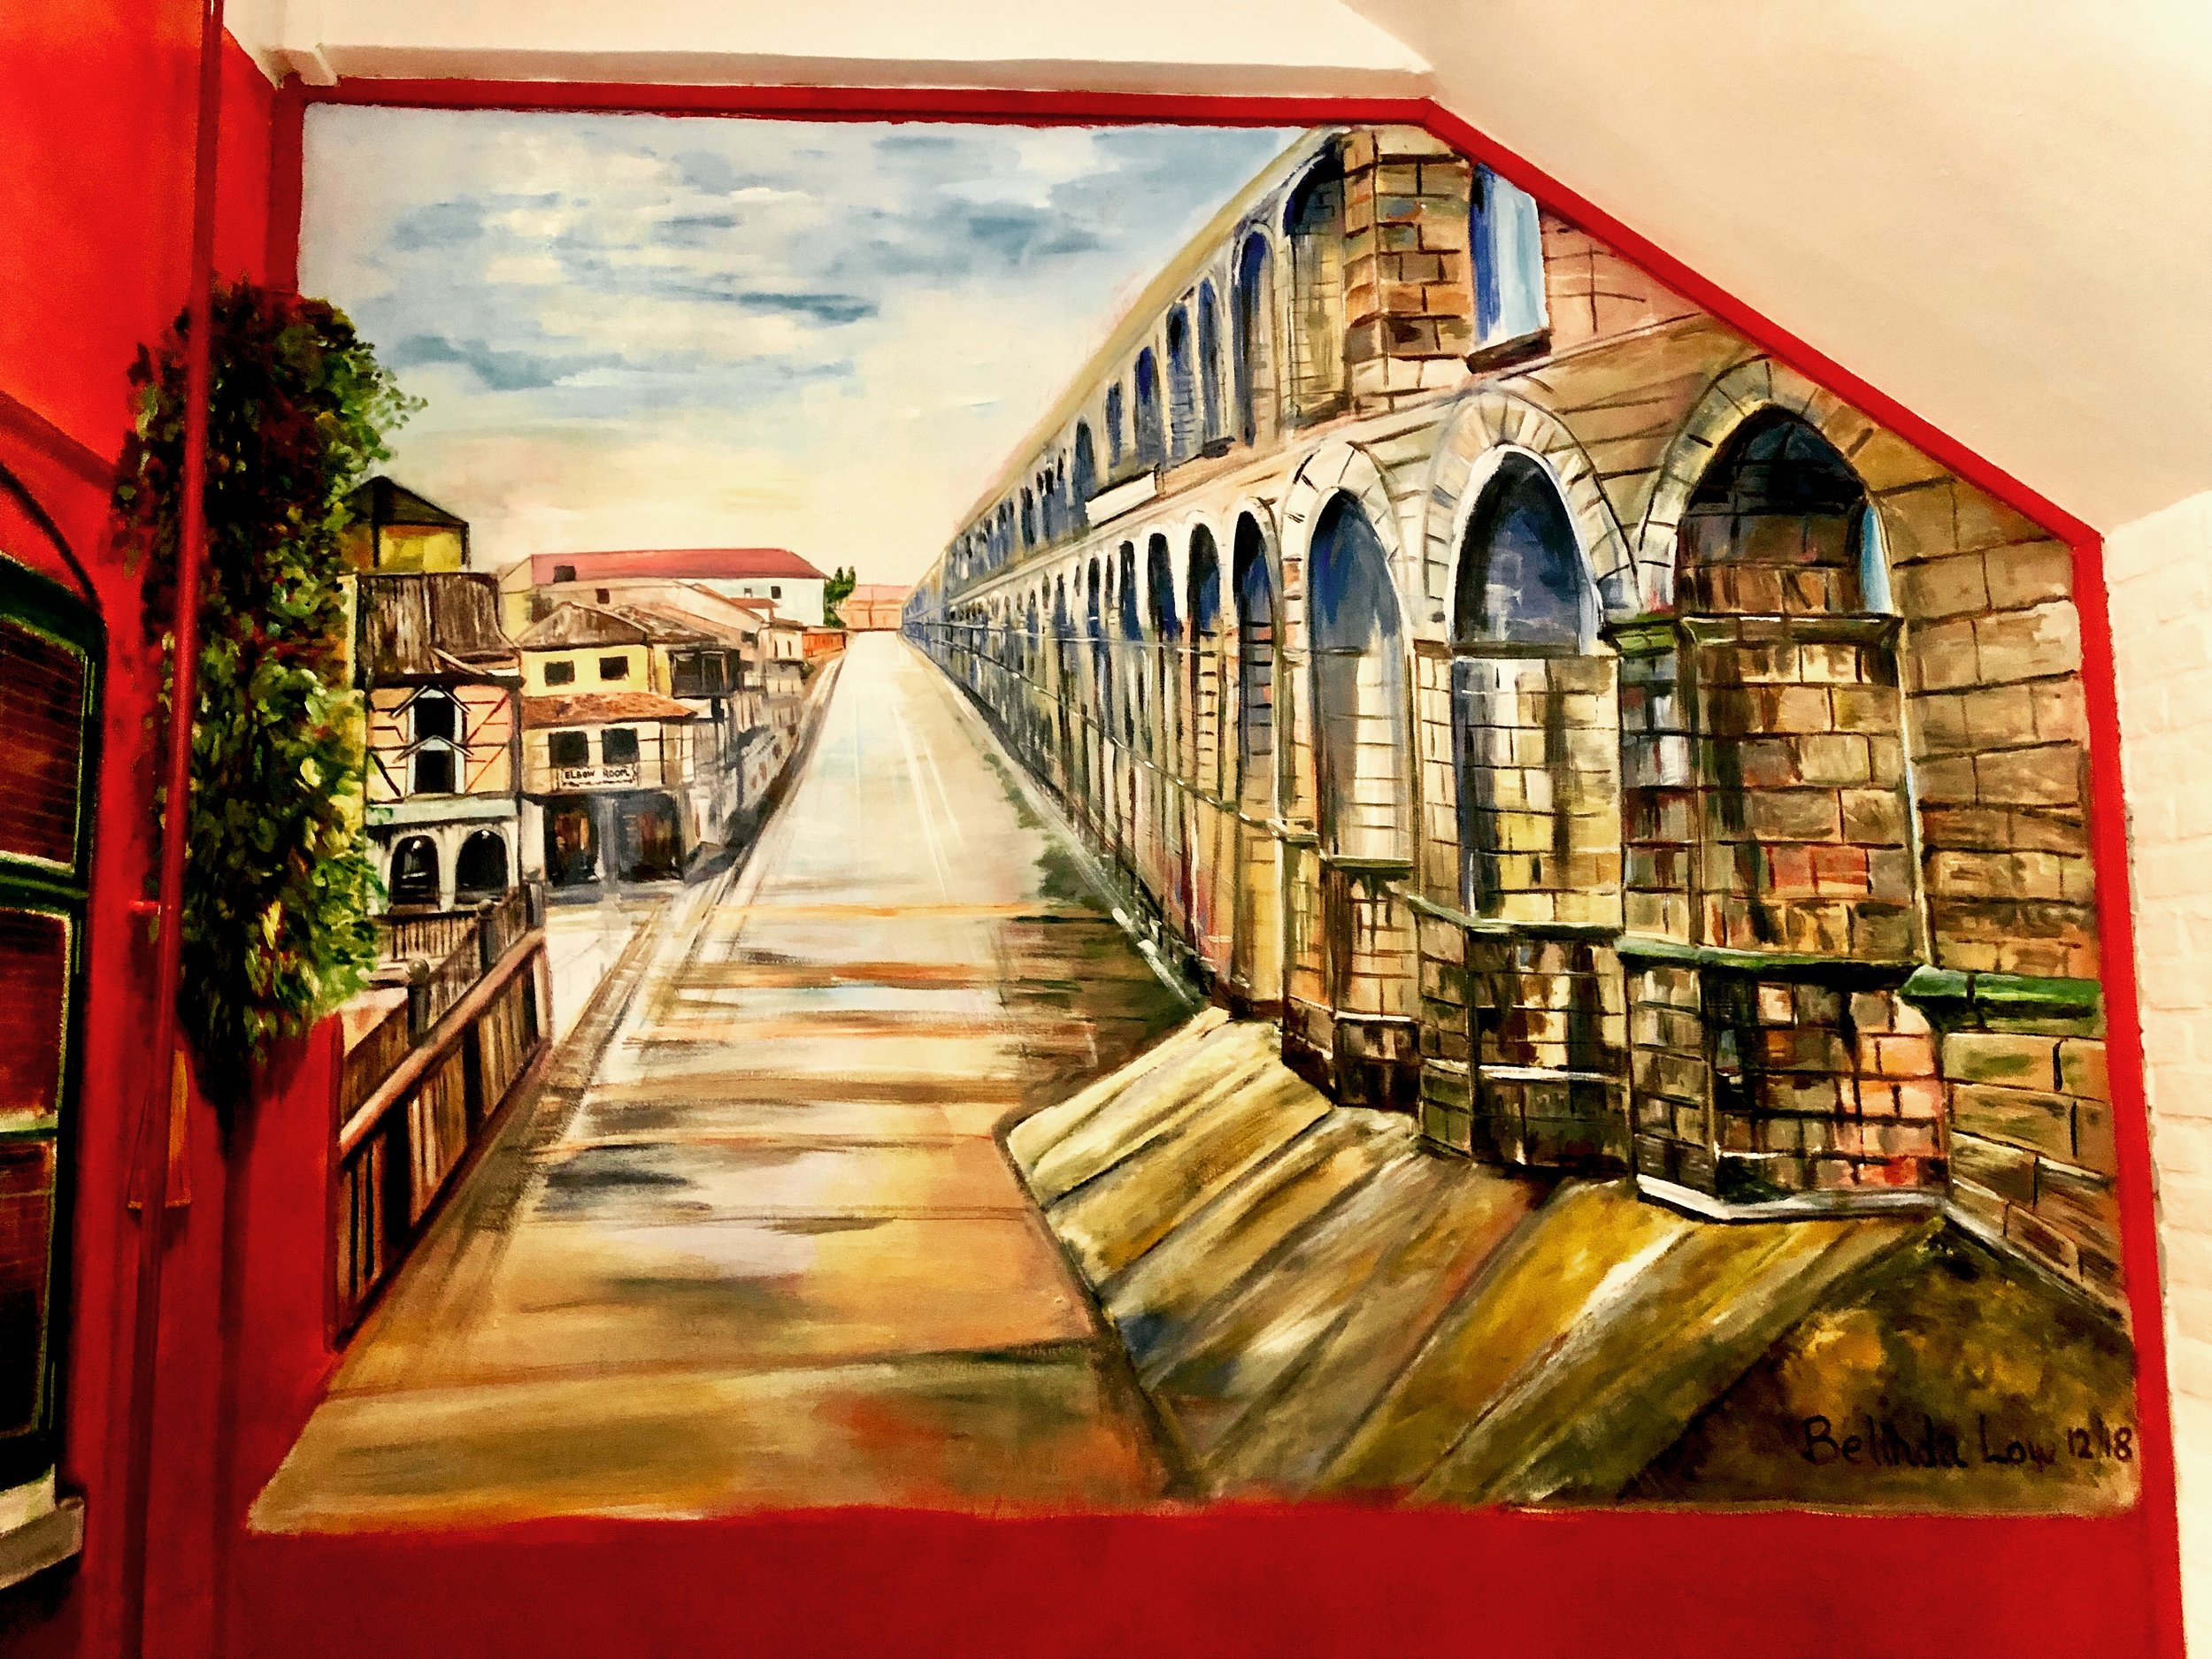 The finished product… I added Elbow Room in the distance for one of the buildings on the left…